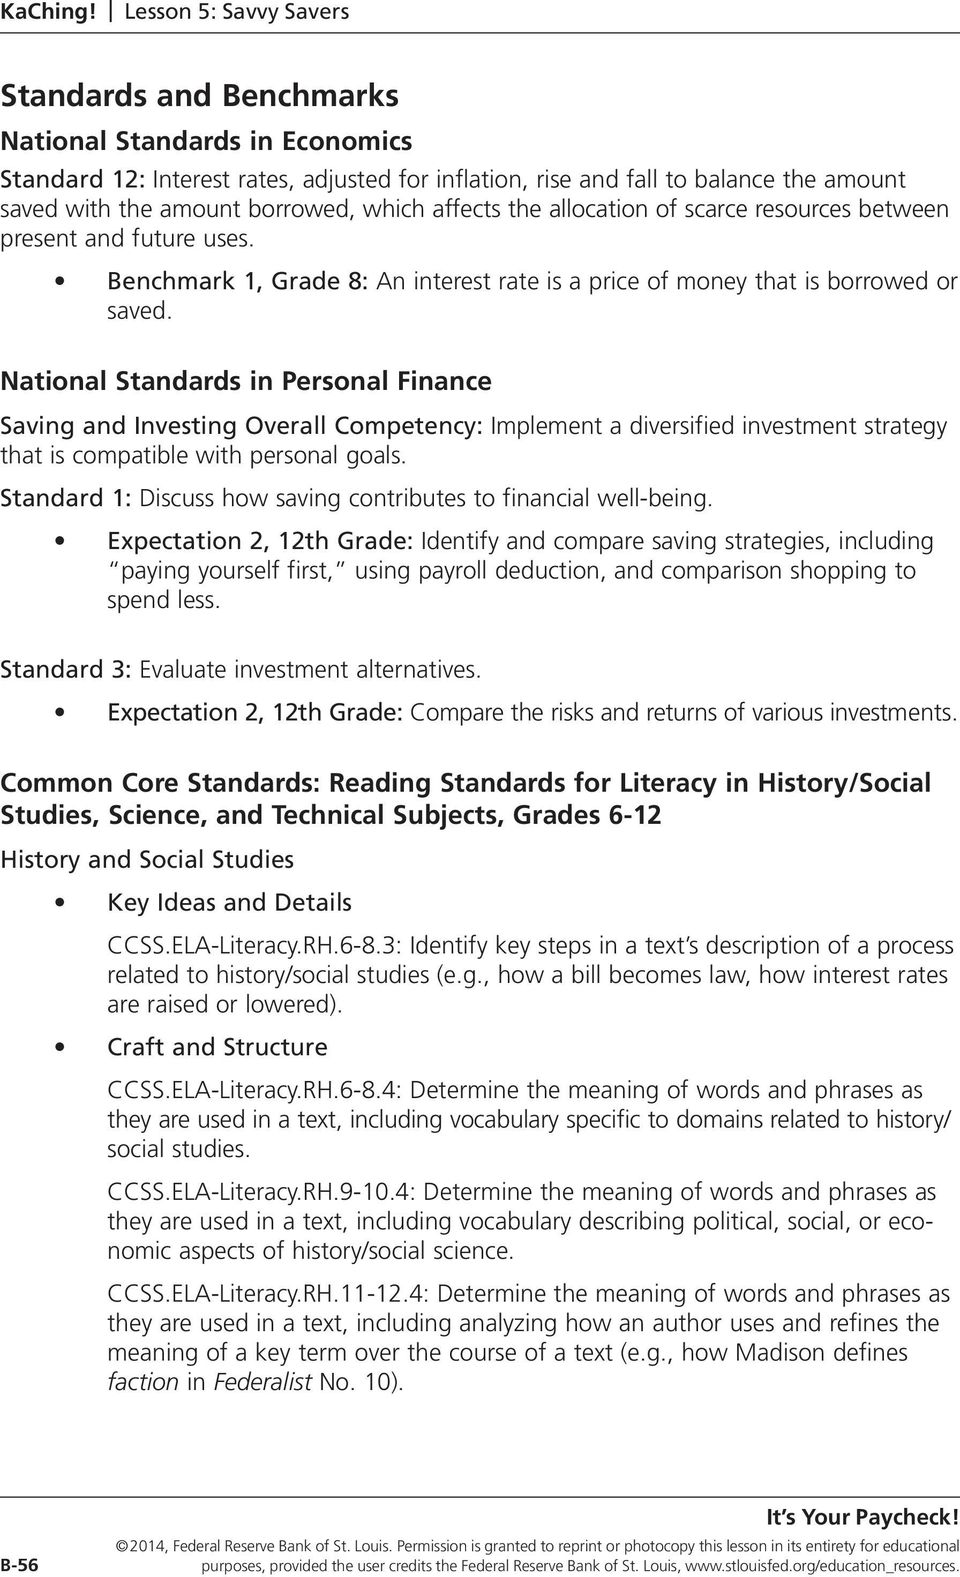 National Standards in Personal Finance Saving and Investing Overall Competency: Implement a diversified investment strategy that is compatible with personal goals.